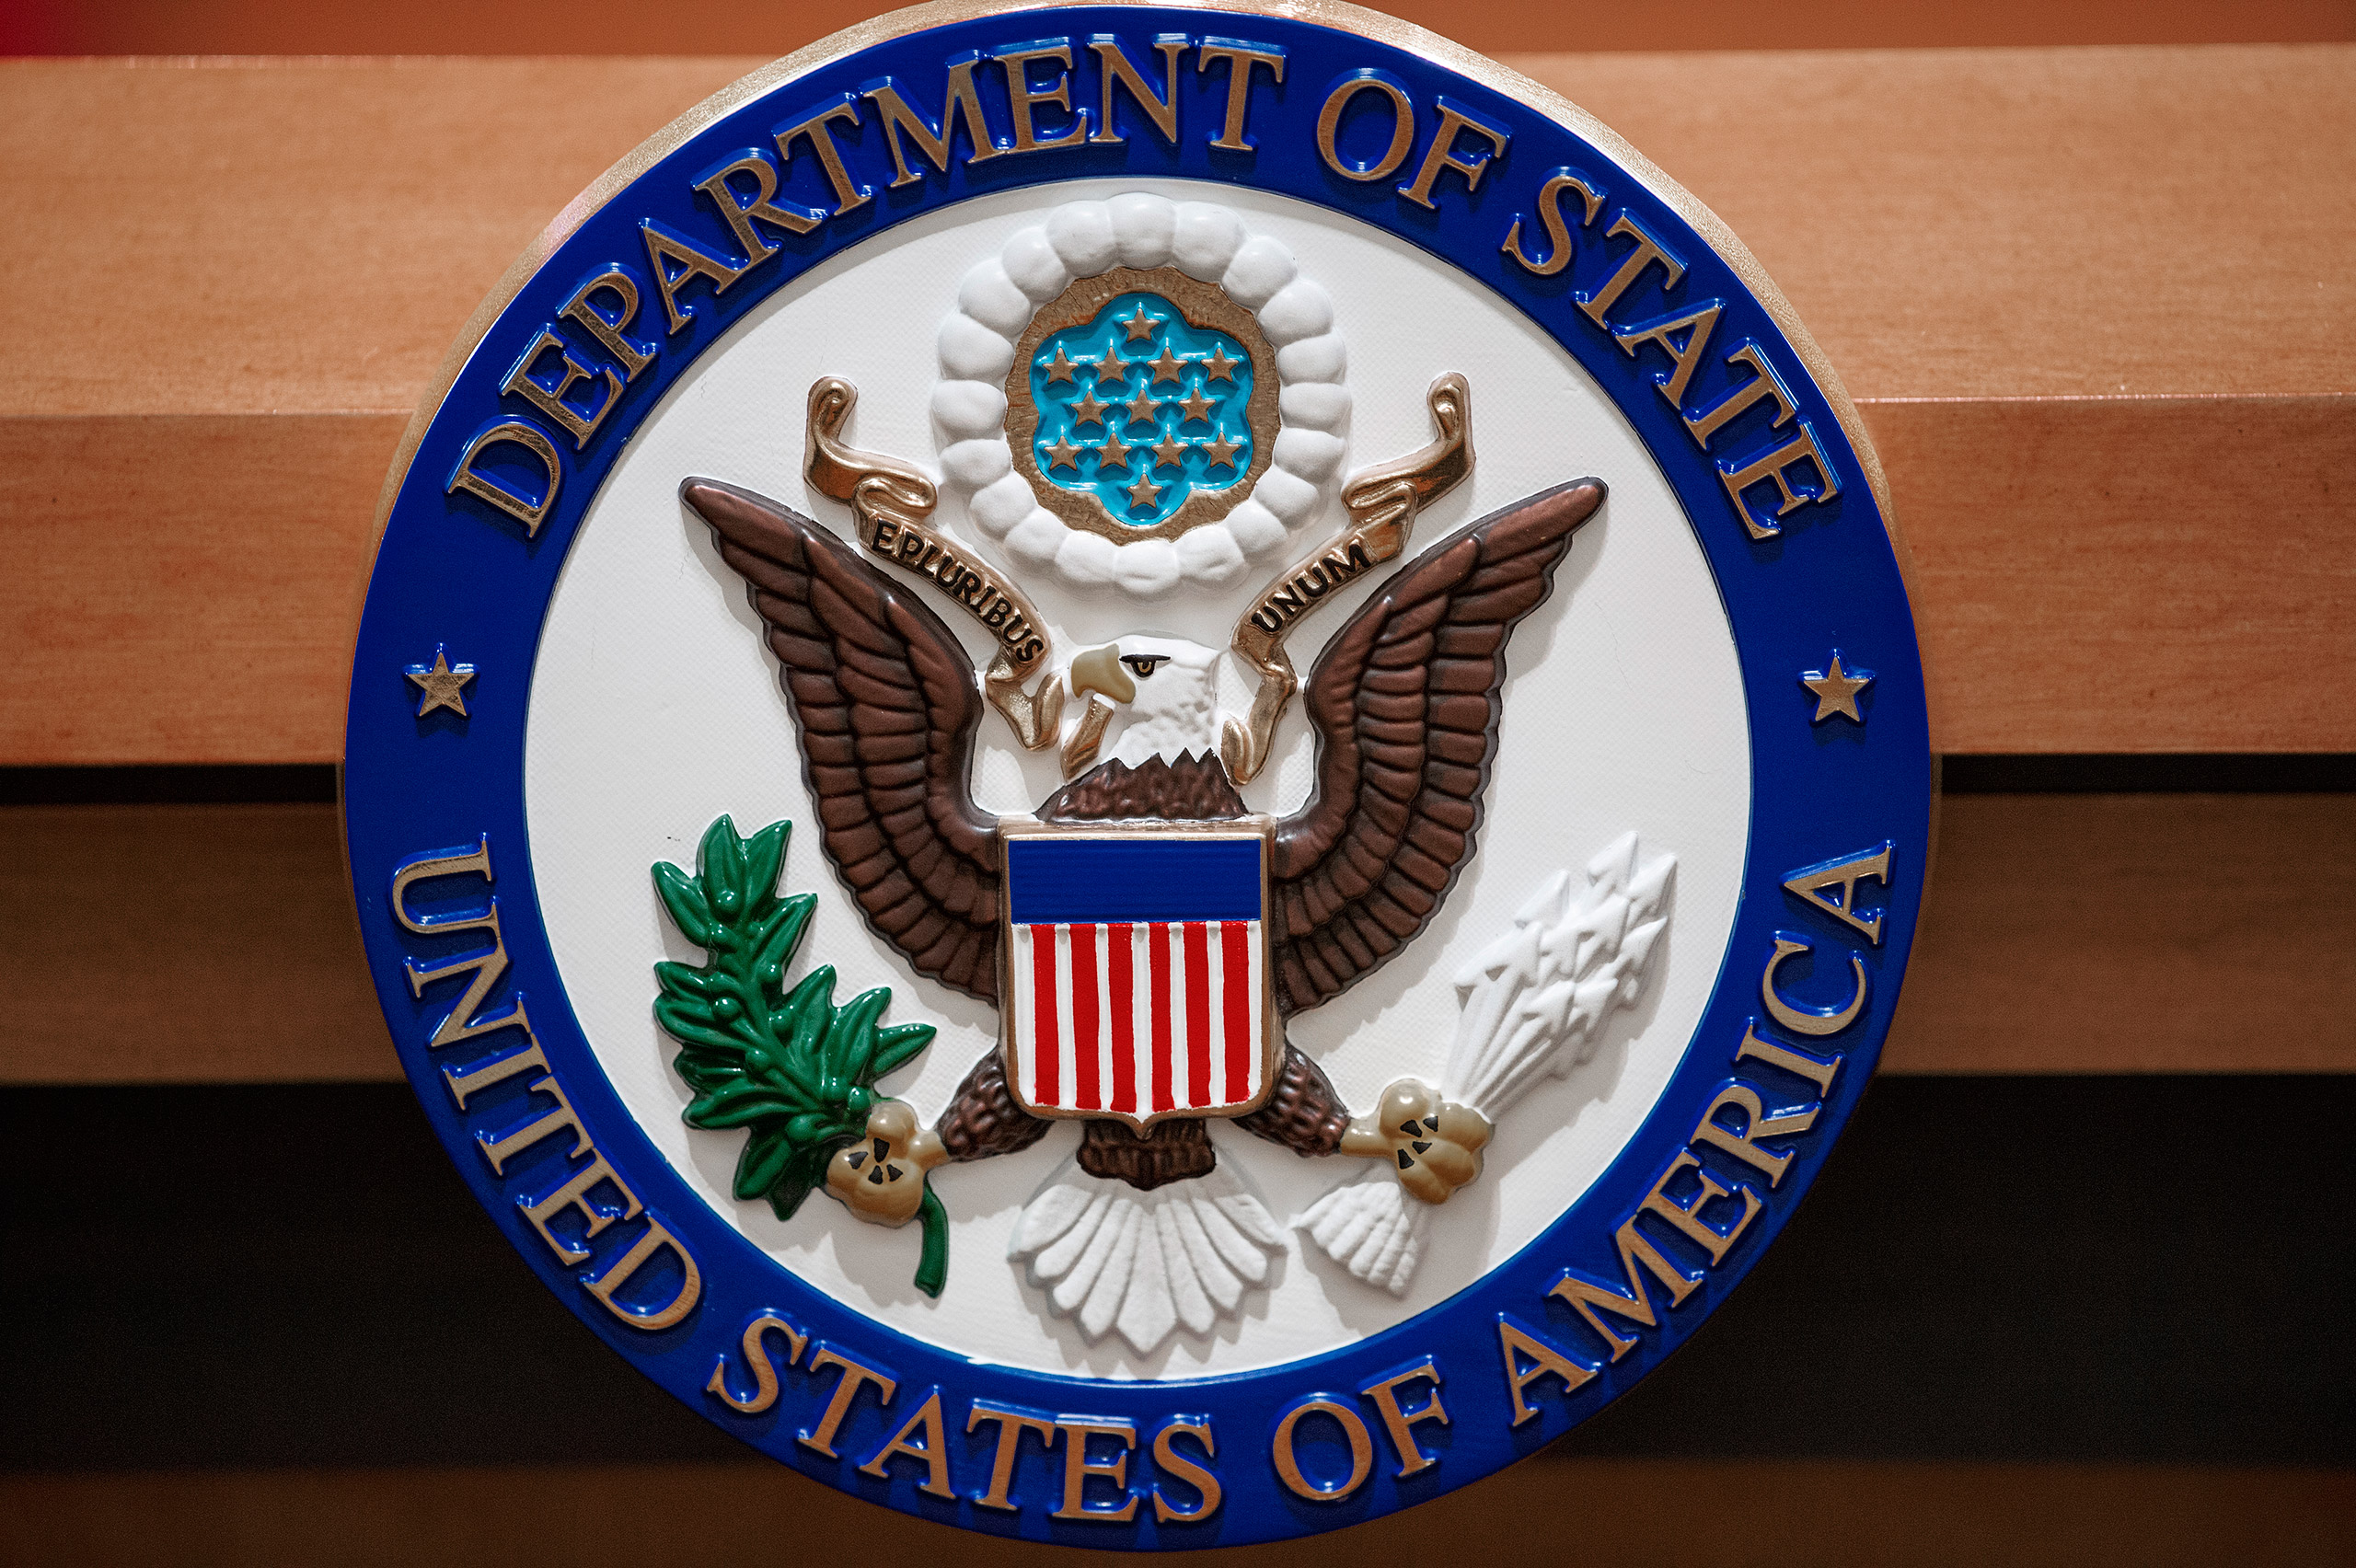 The seal of the U.S. Department of State is seen on the lectern in a briefing room in Washington, D.C., Nov. 26, 2013.